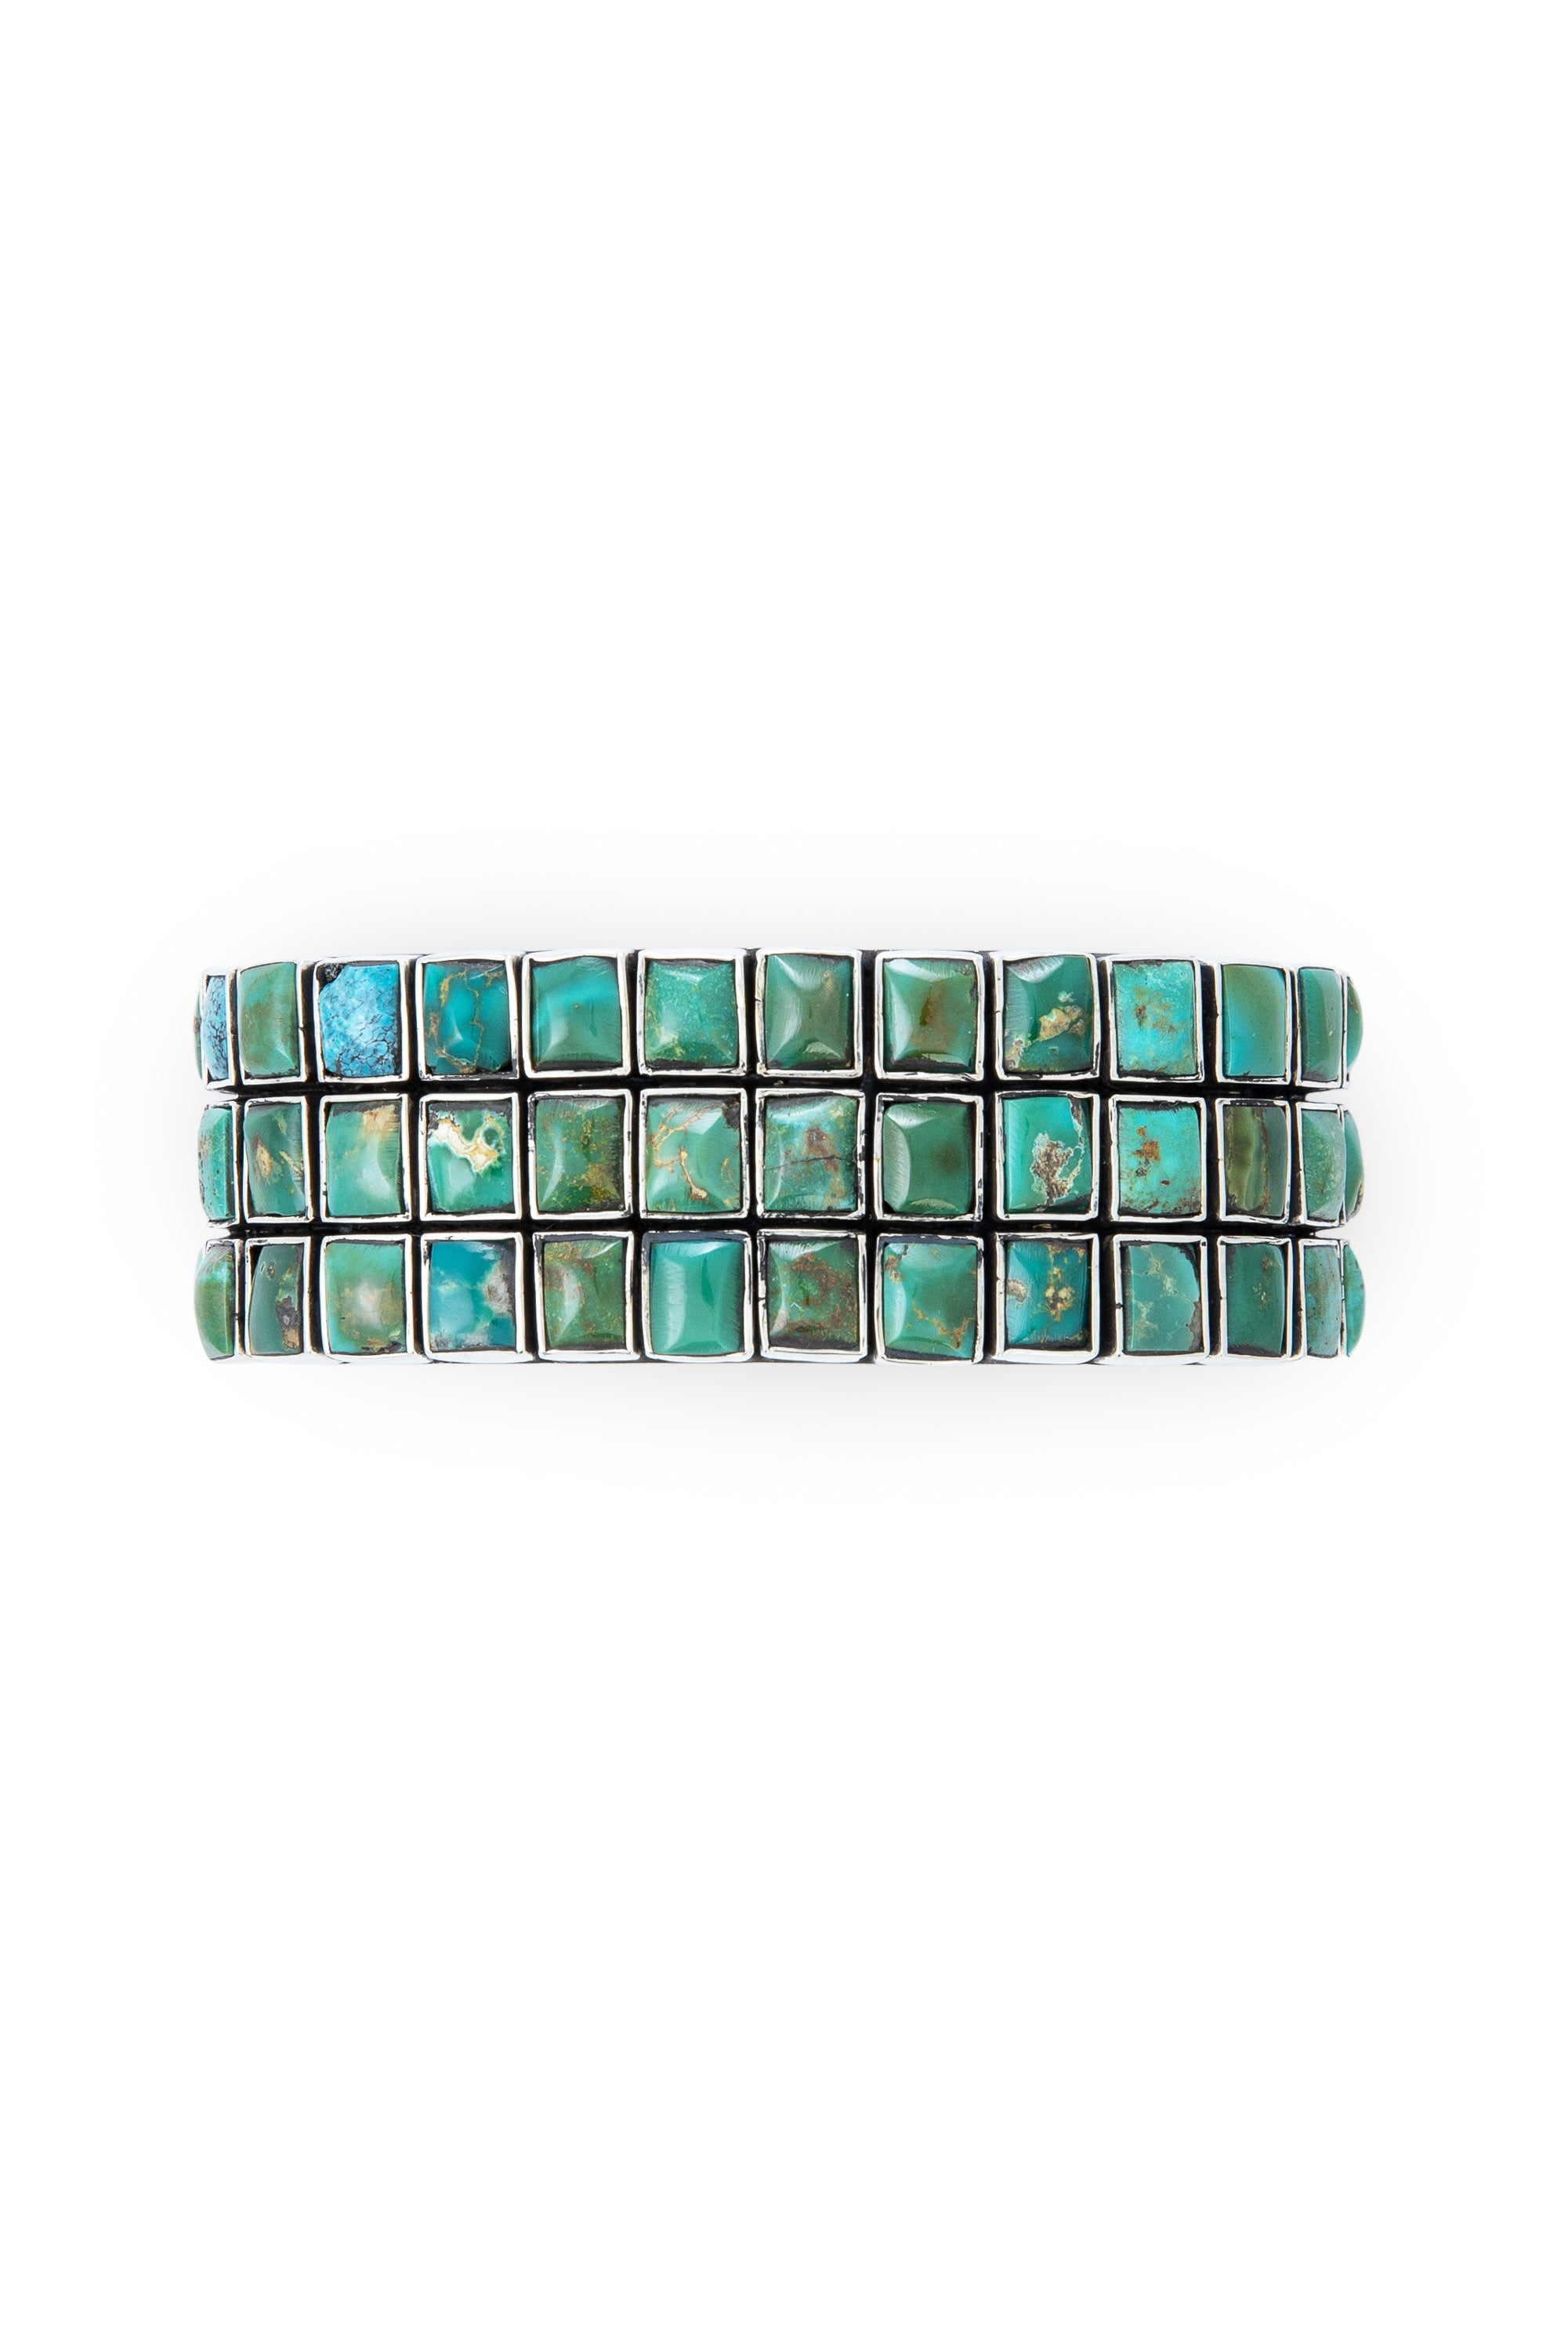 Cuff, Turquoise, 3 Row, 60 Stone, Federico, Contemporary,647